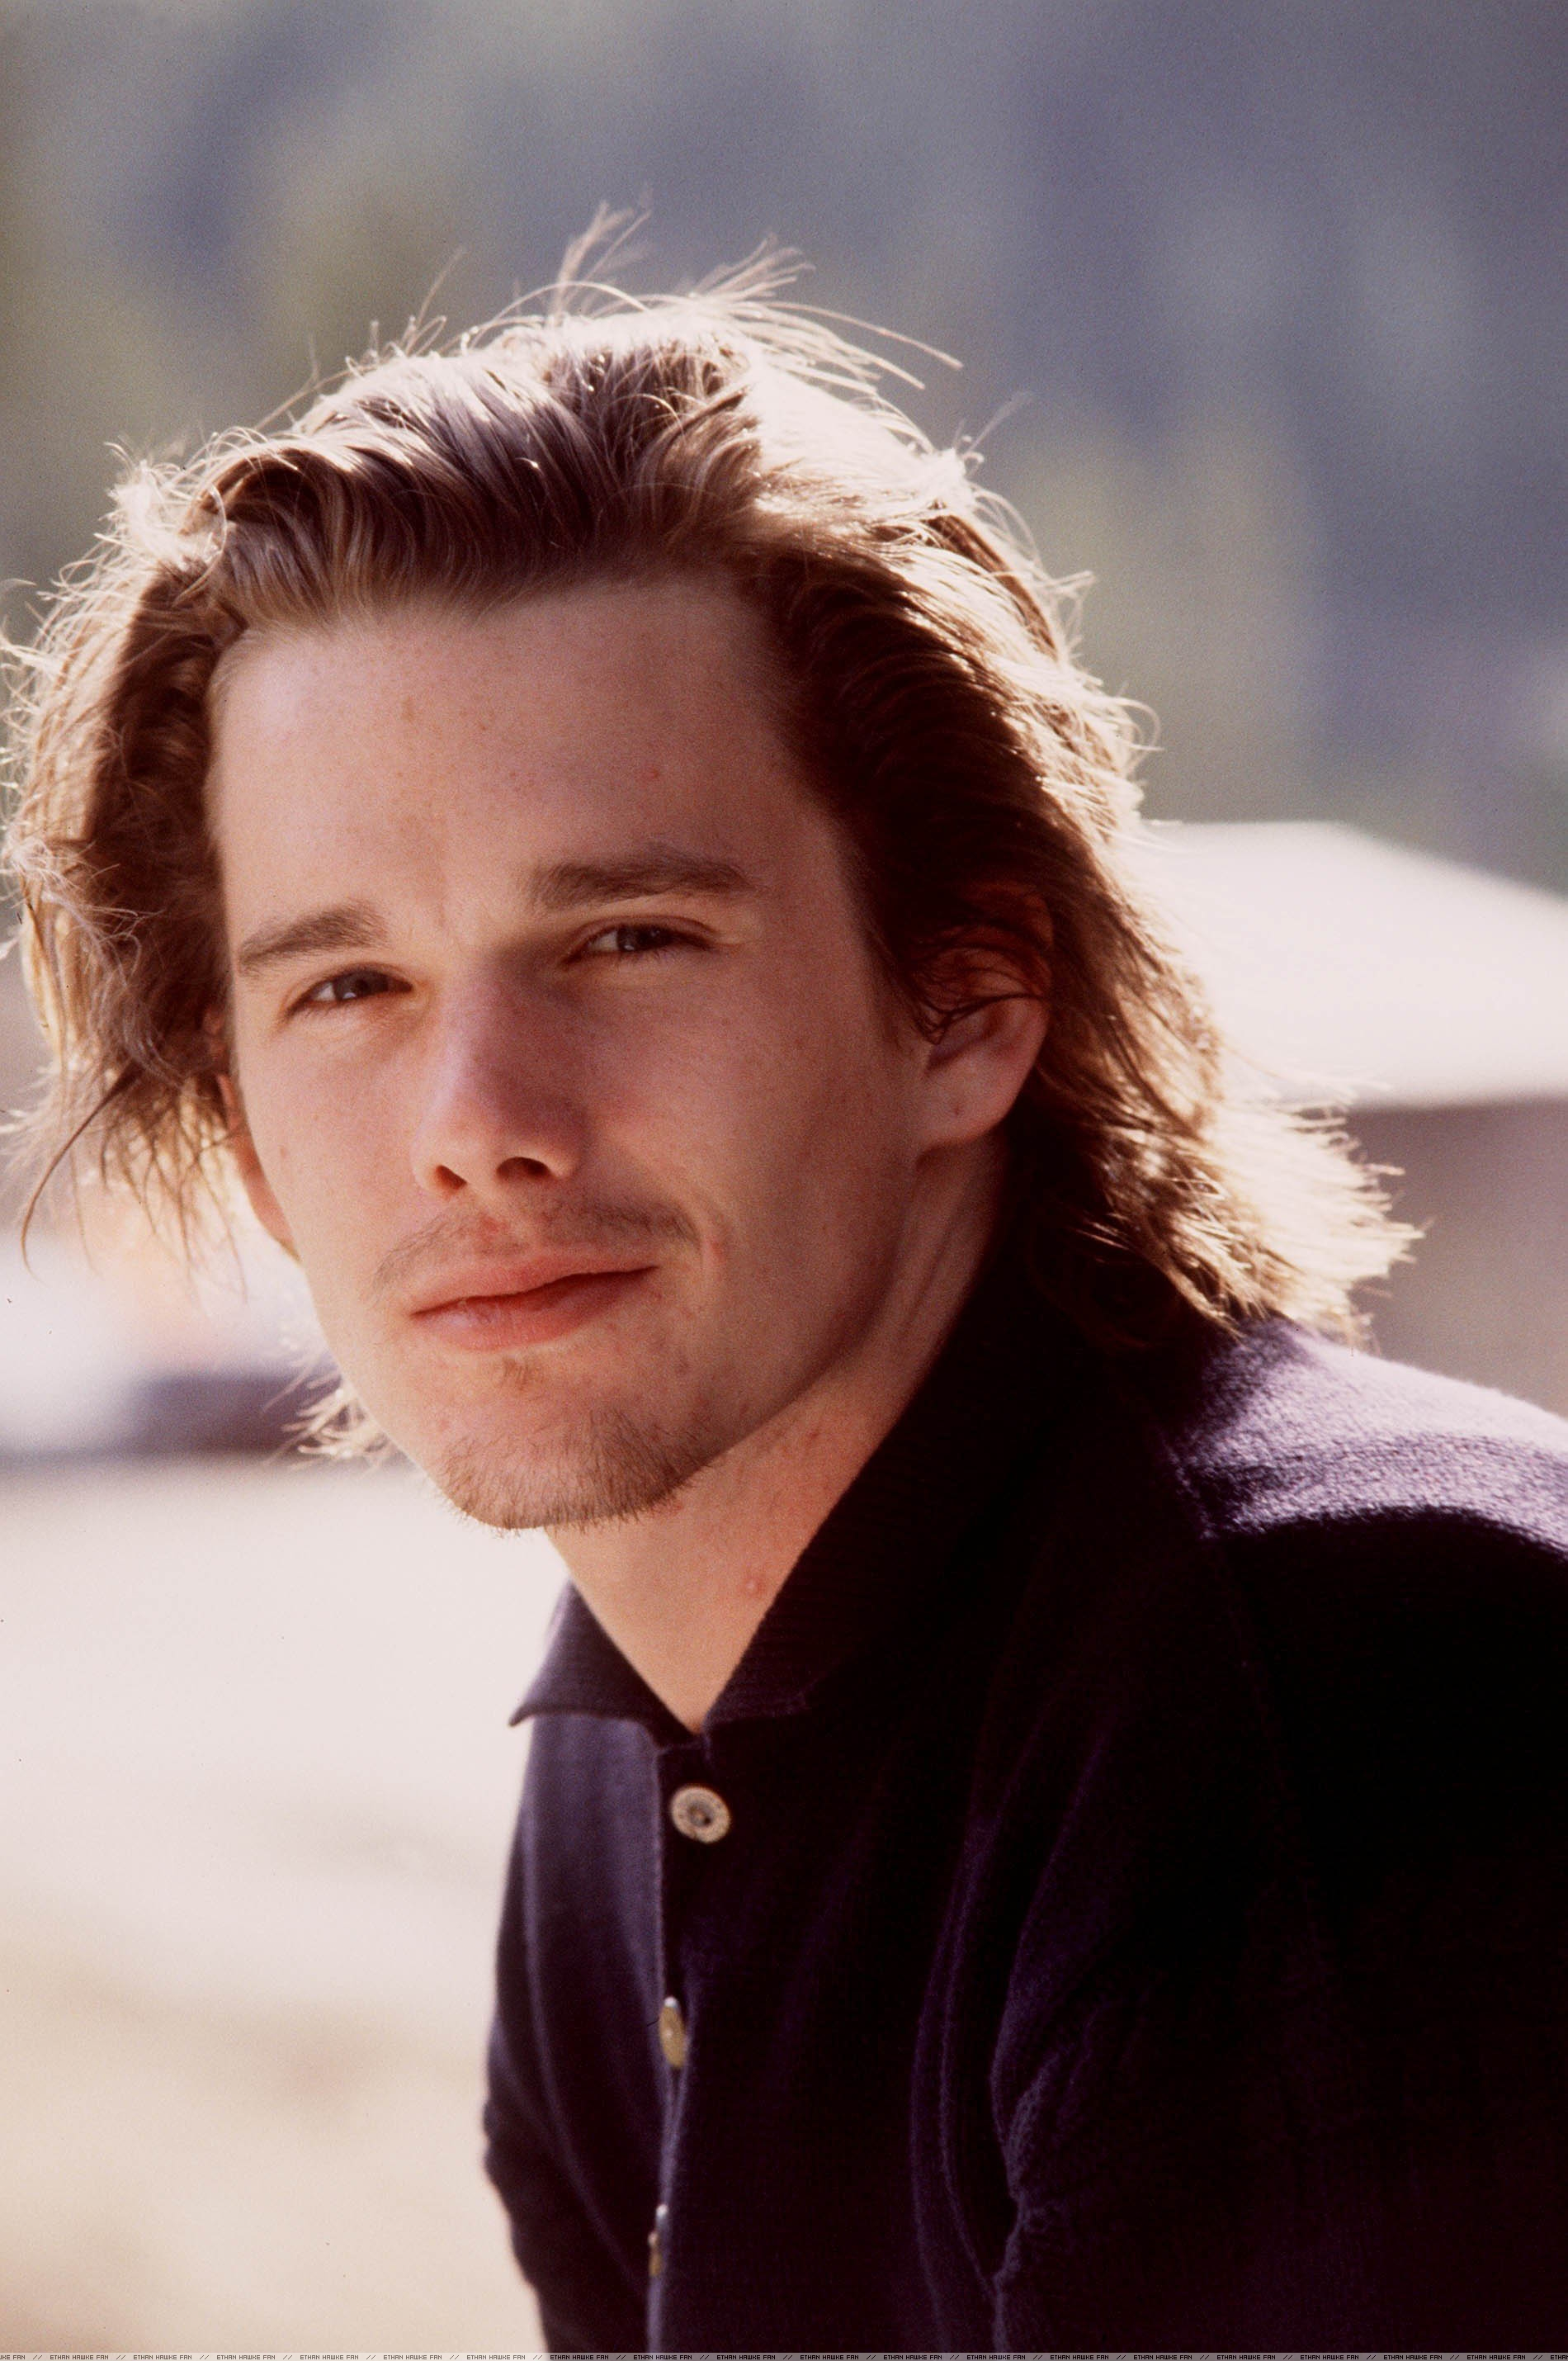 Ethan Hawke photo 34 o...